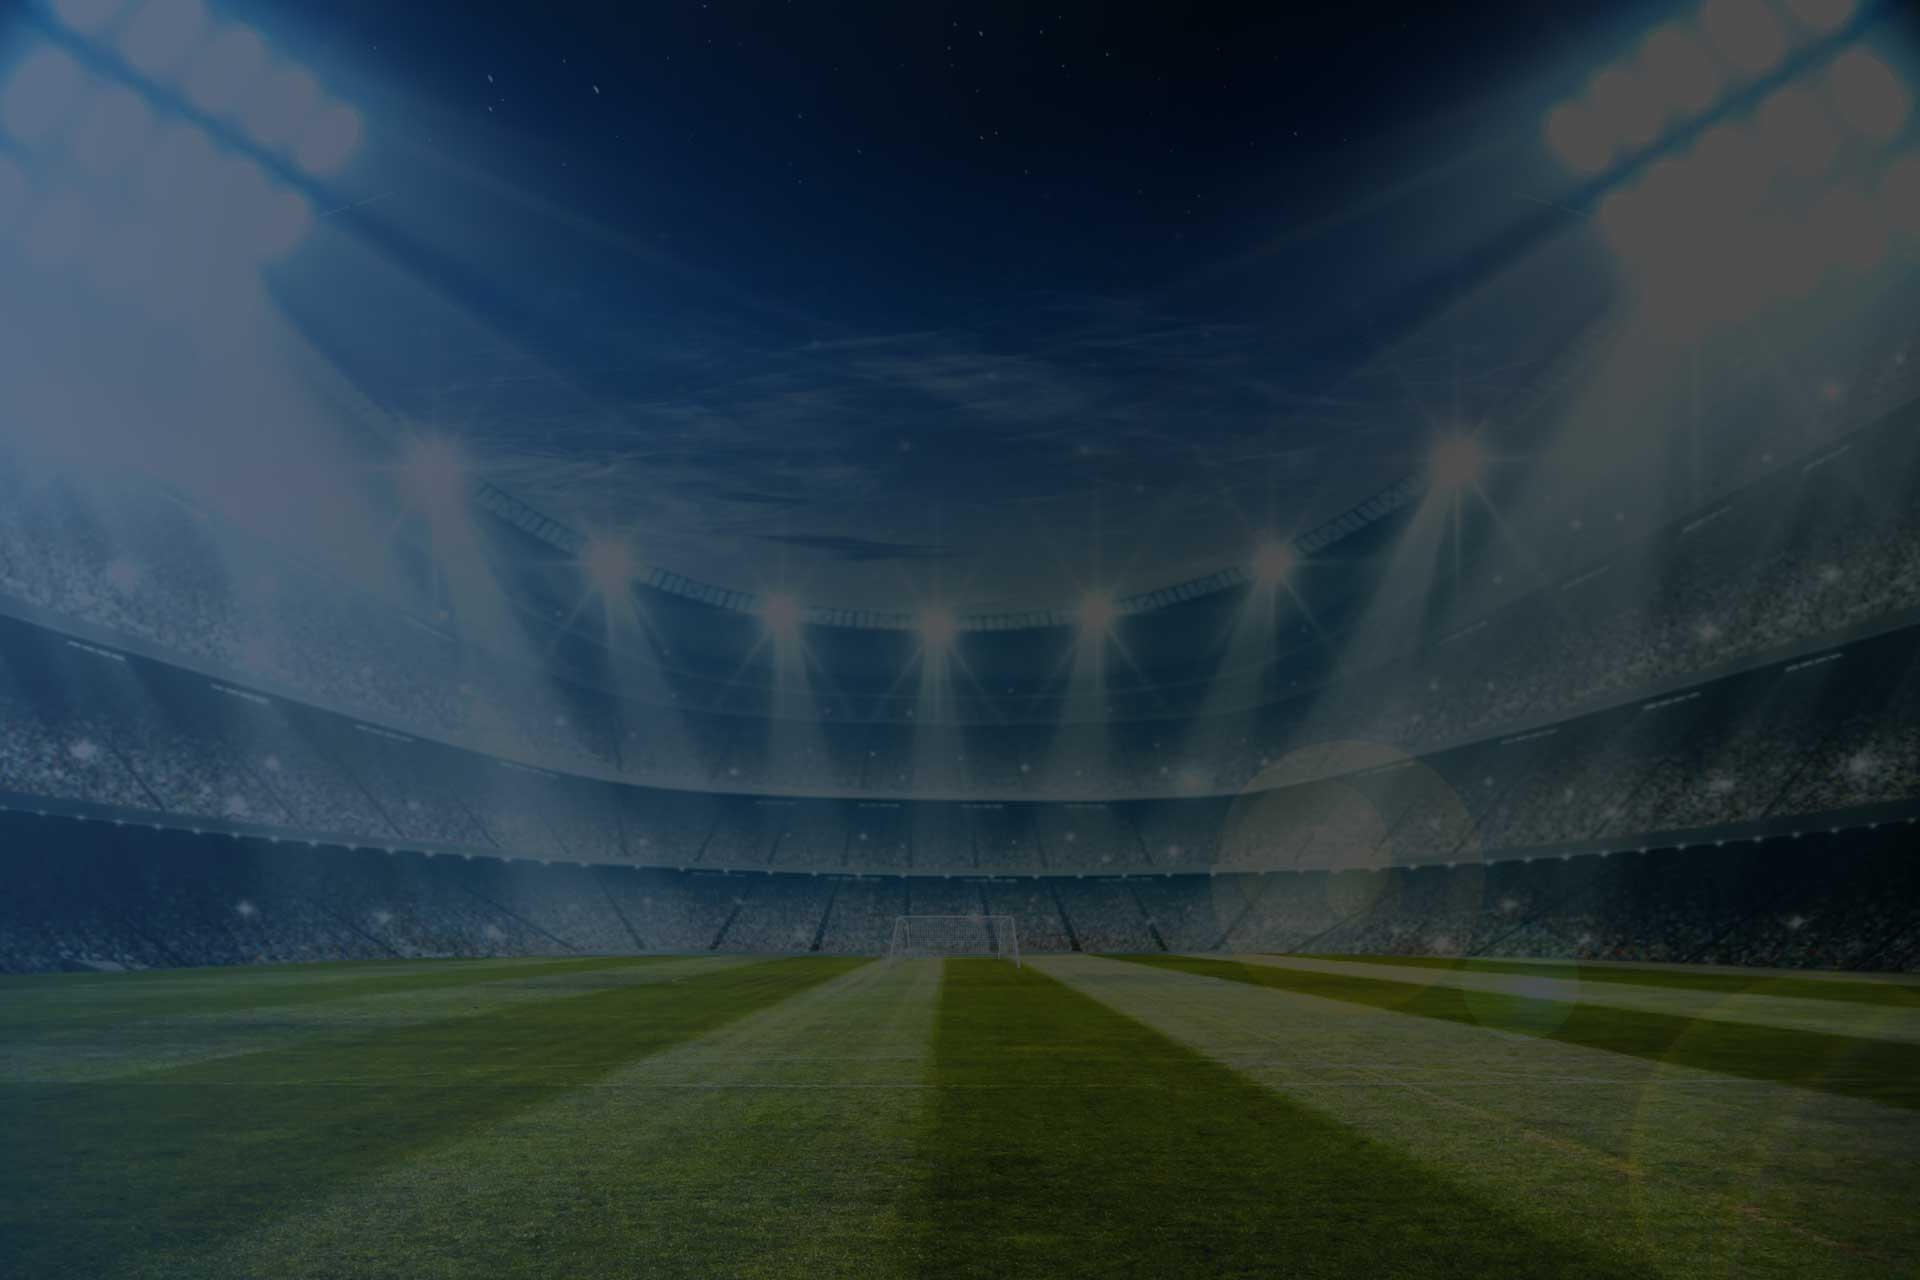 LED Solutions for sports and arenas from The Green Guys Group